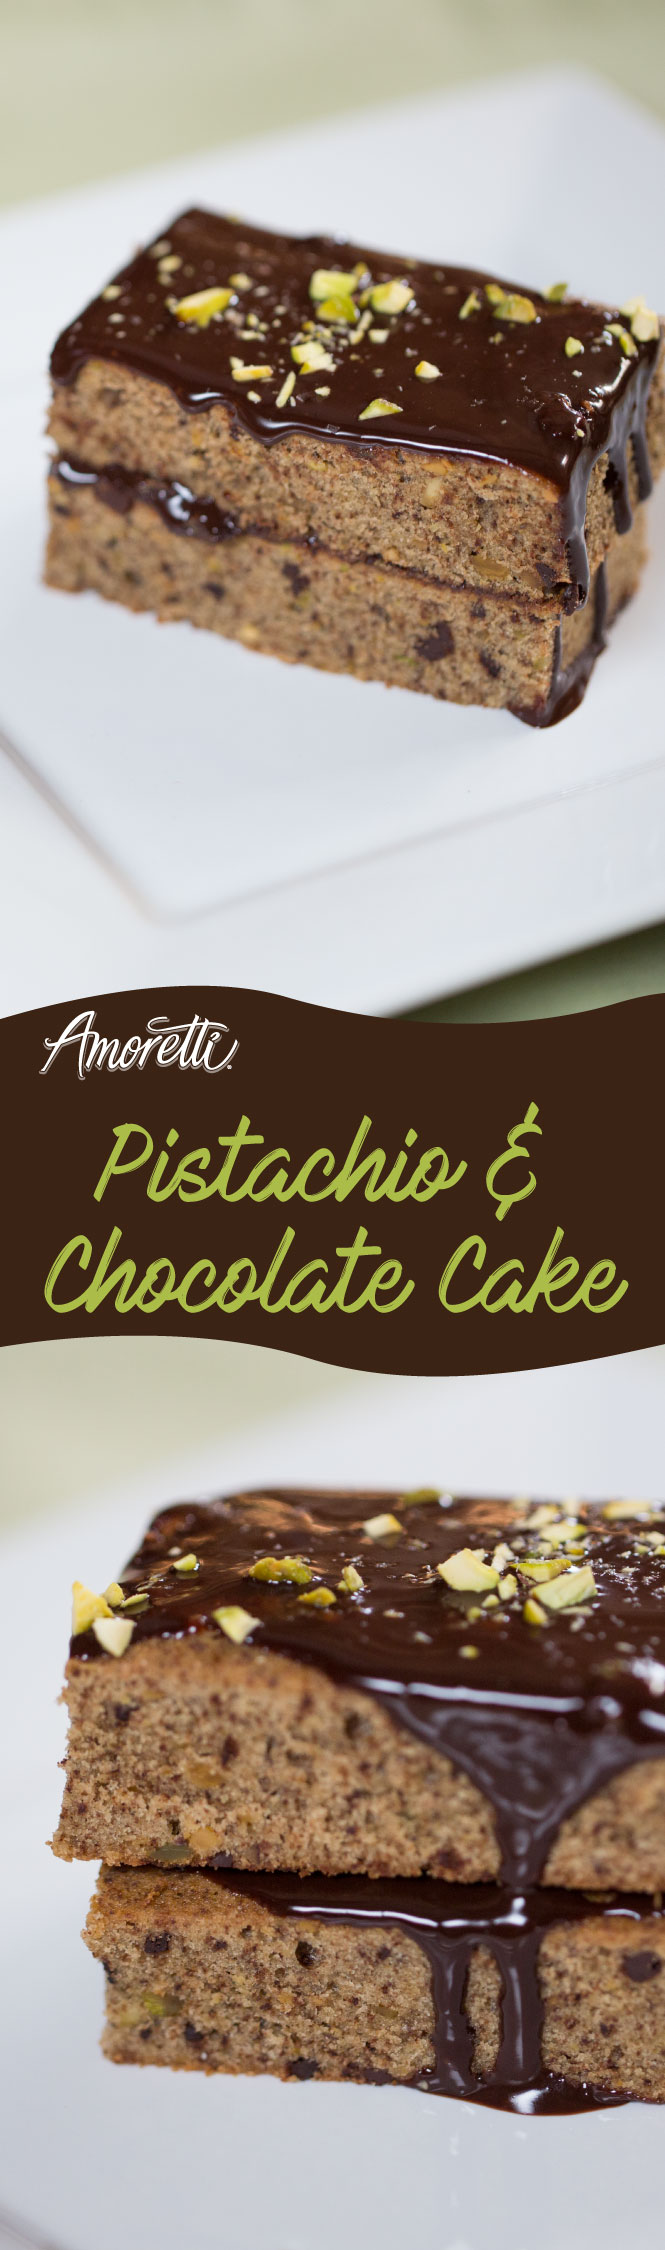 A decadent combination of pistachio and chocolate, great for company!